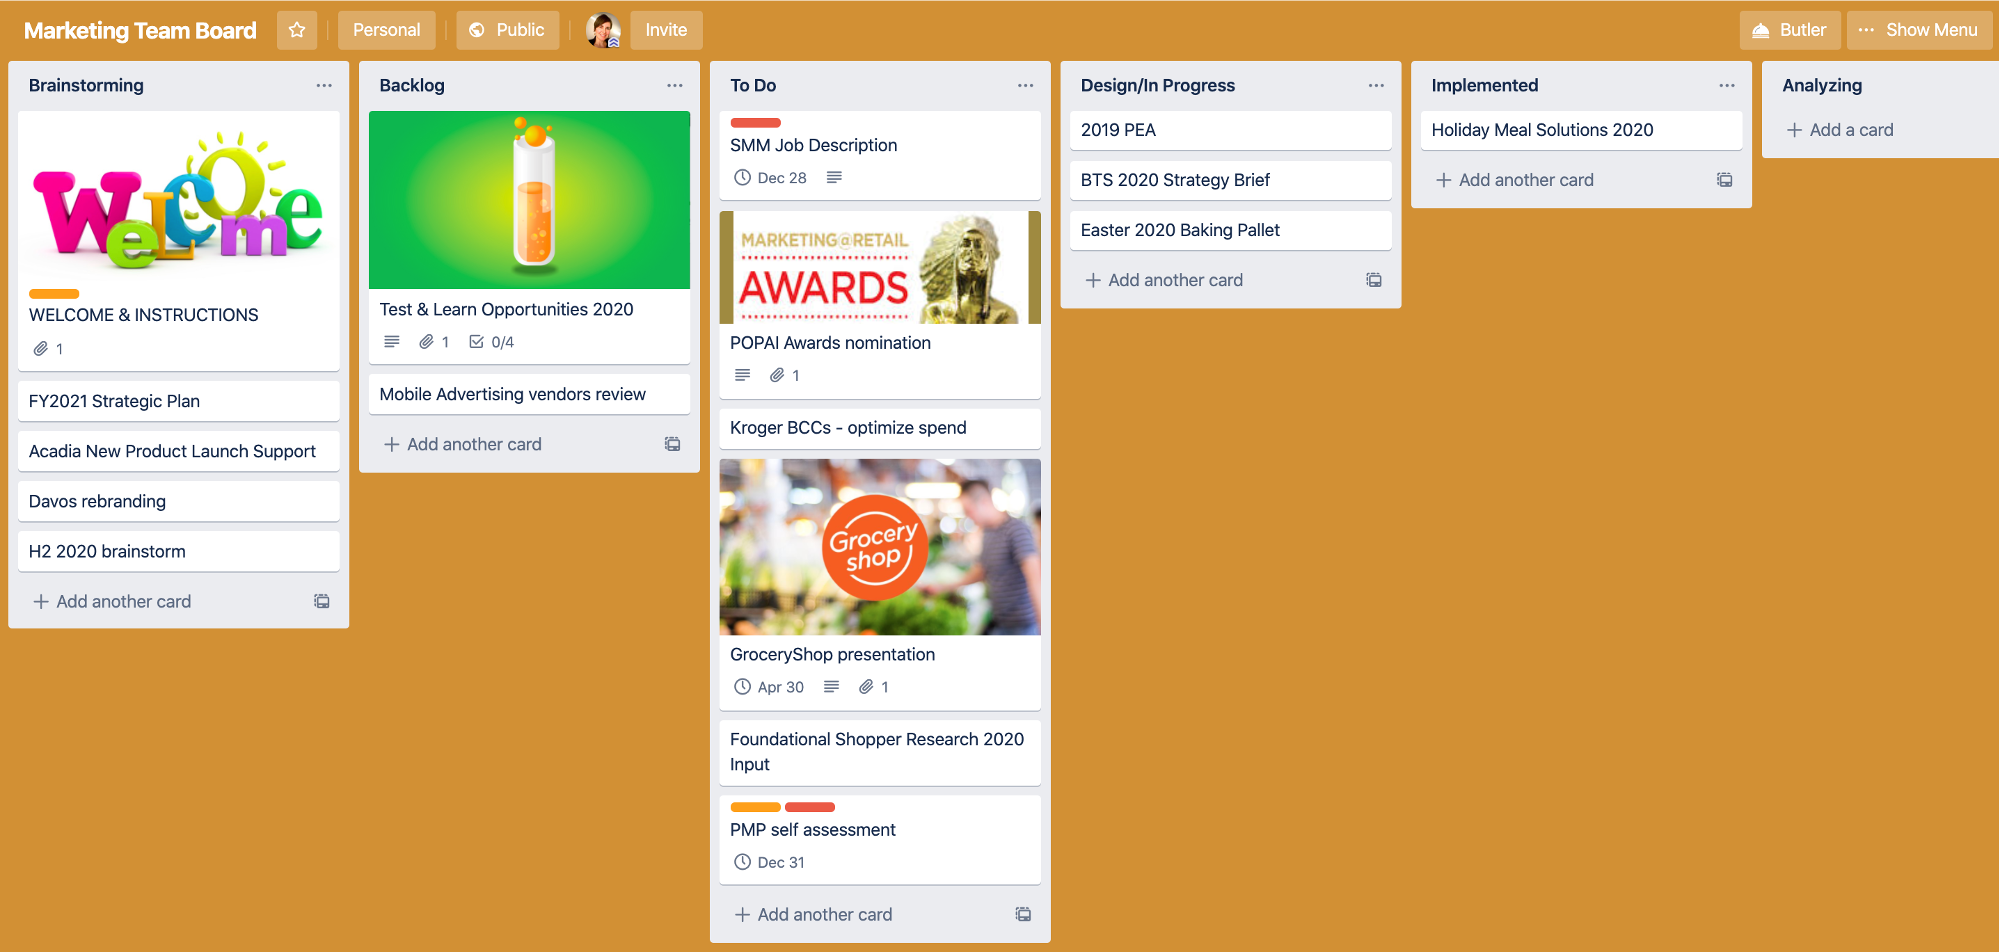 7 Tools to Enable CPG Marketing Remote Work